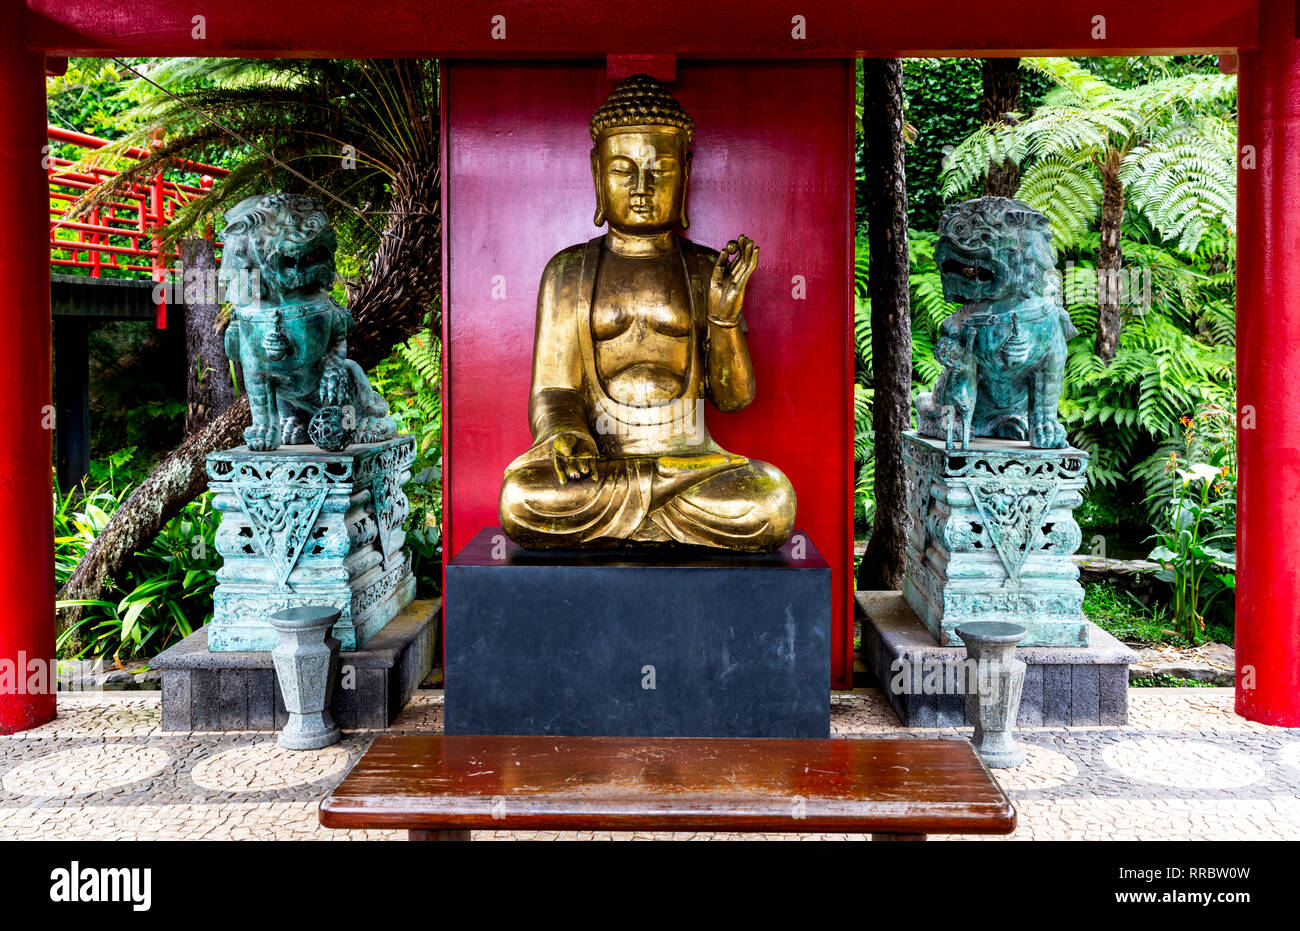 Golden Buddha statue in the Japanese garden, Monte Palace Tropical Gardens, Funchal, Madeira, Portugal. Stock Photo